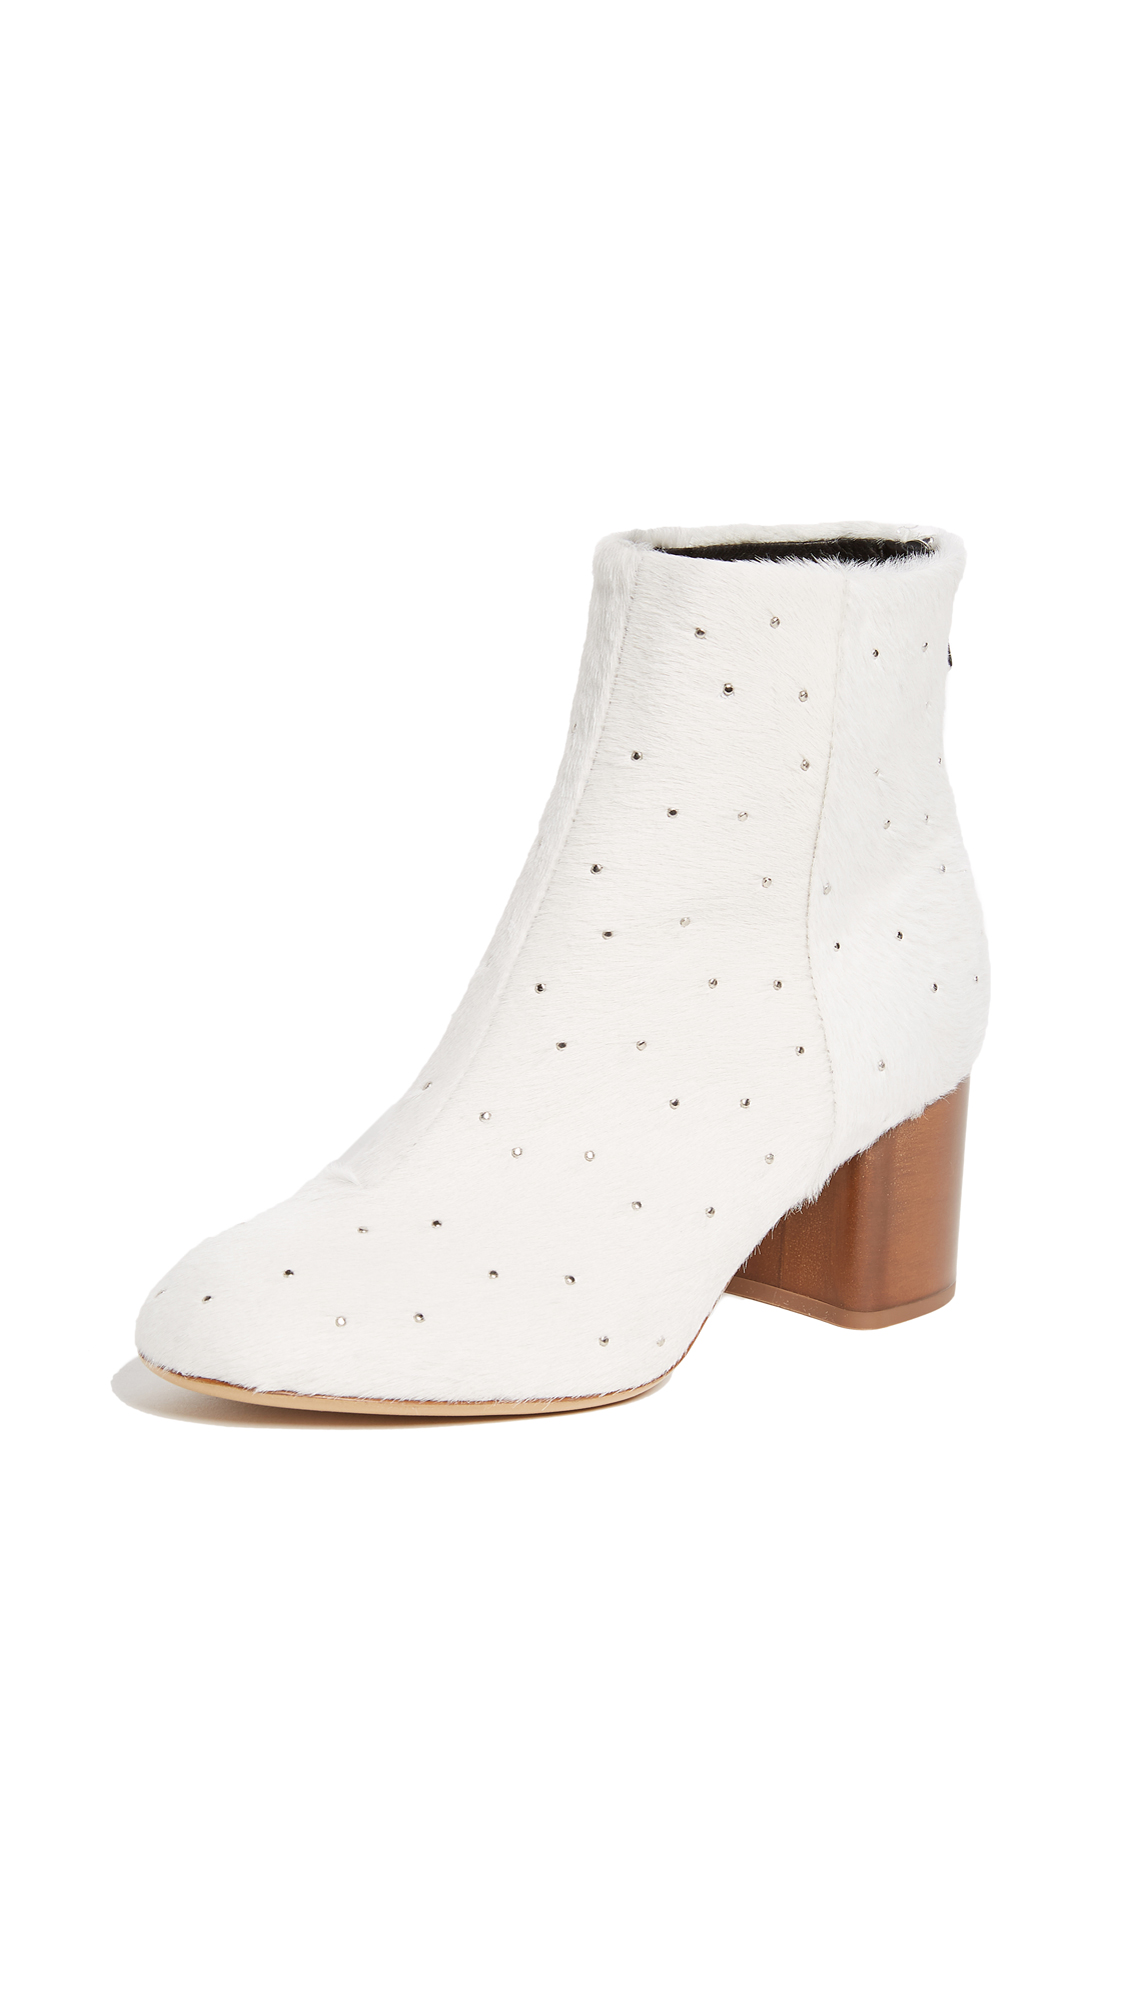 Rag & Bone Drea Booties - White